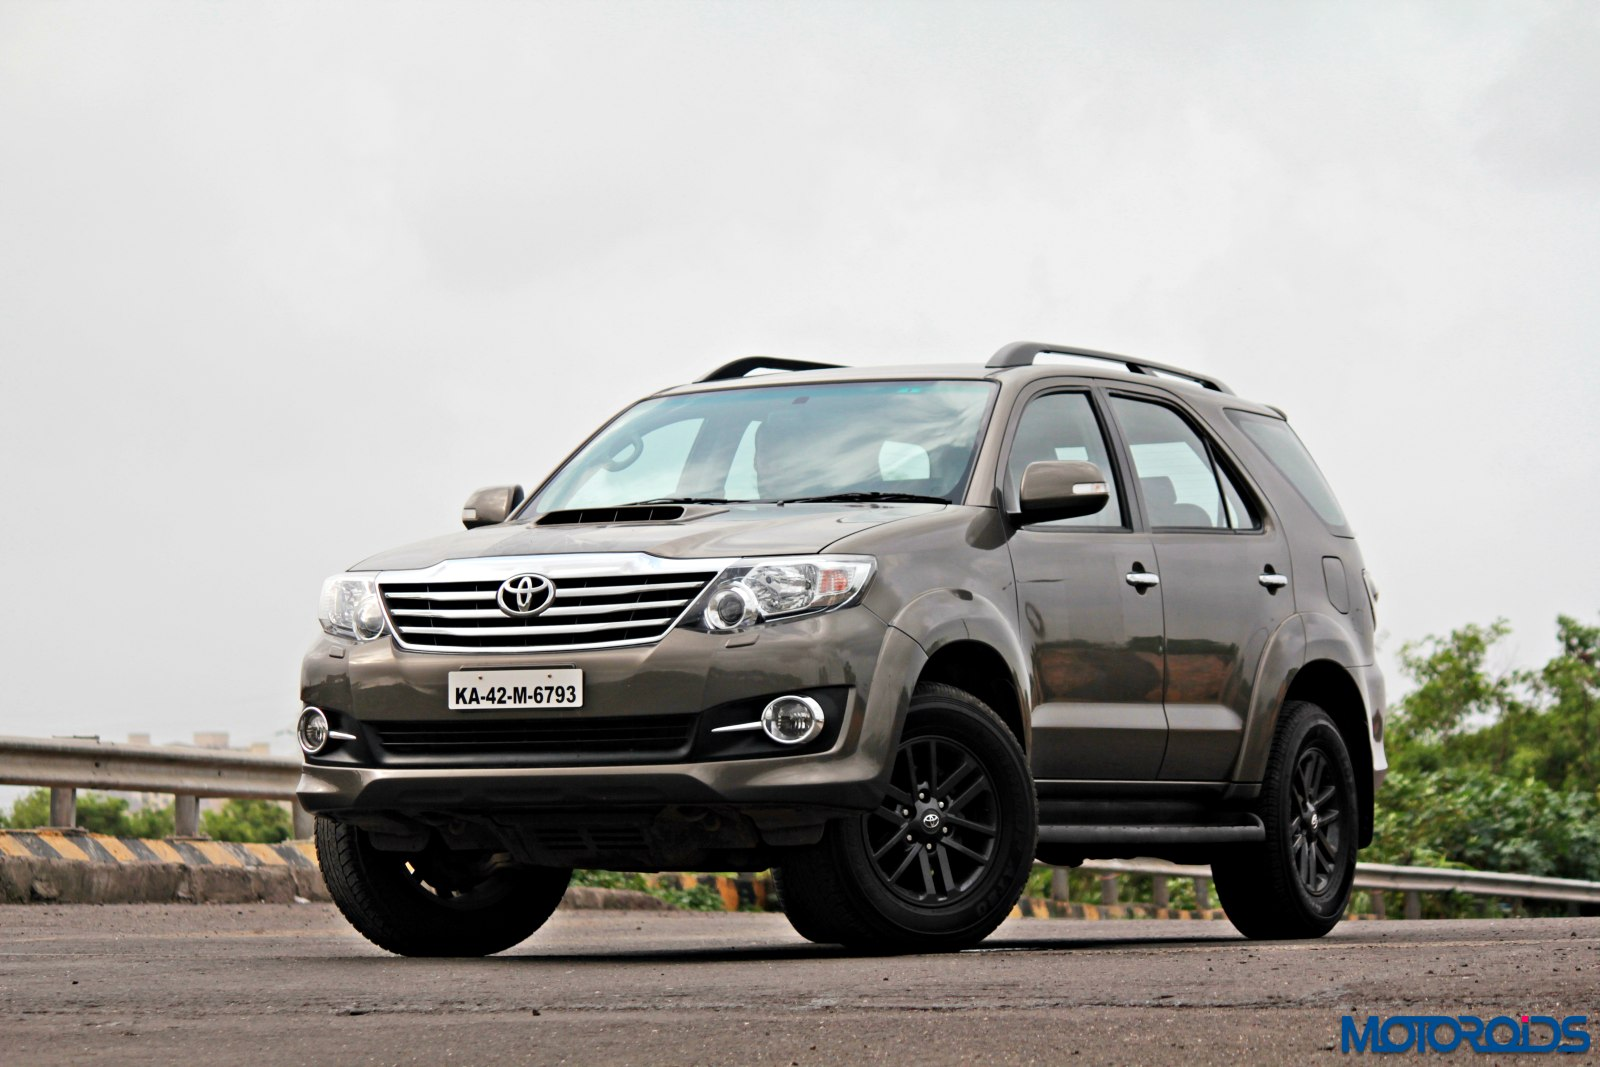 2015 Toyota Fortuner 3 0 4x4 At Review Ageless Brawn